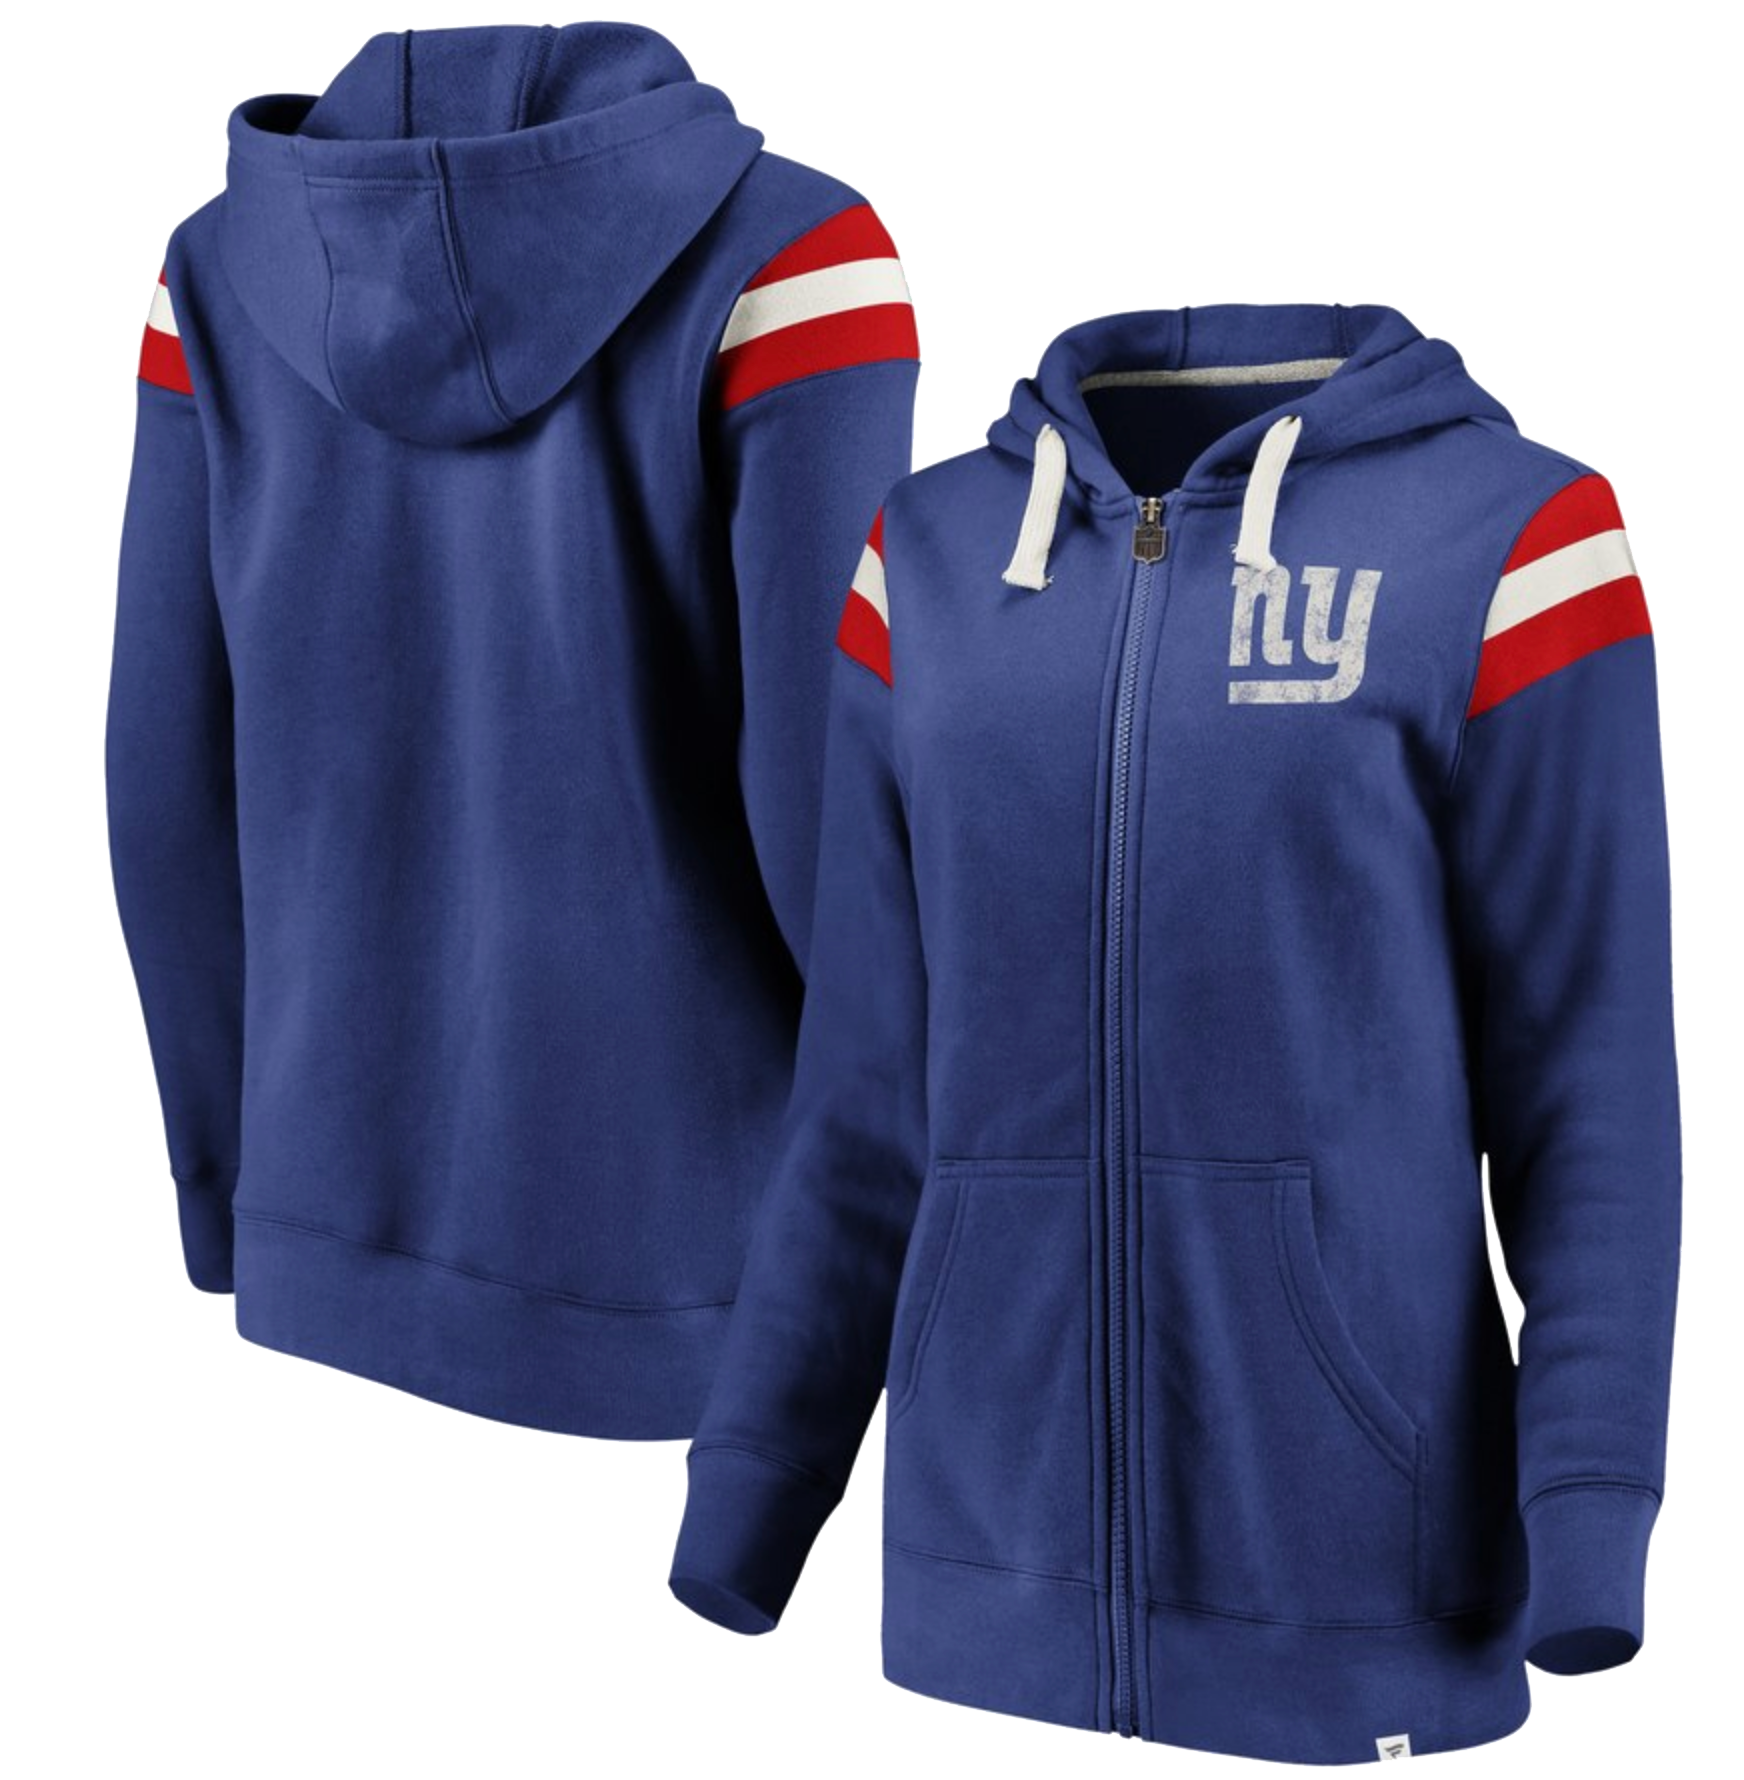 ed46ae5a Women's New York Giants NFL Pro Line by Fanatics Branded Royal/Red ...